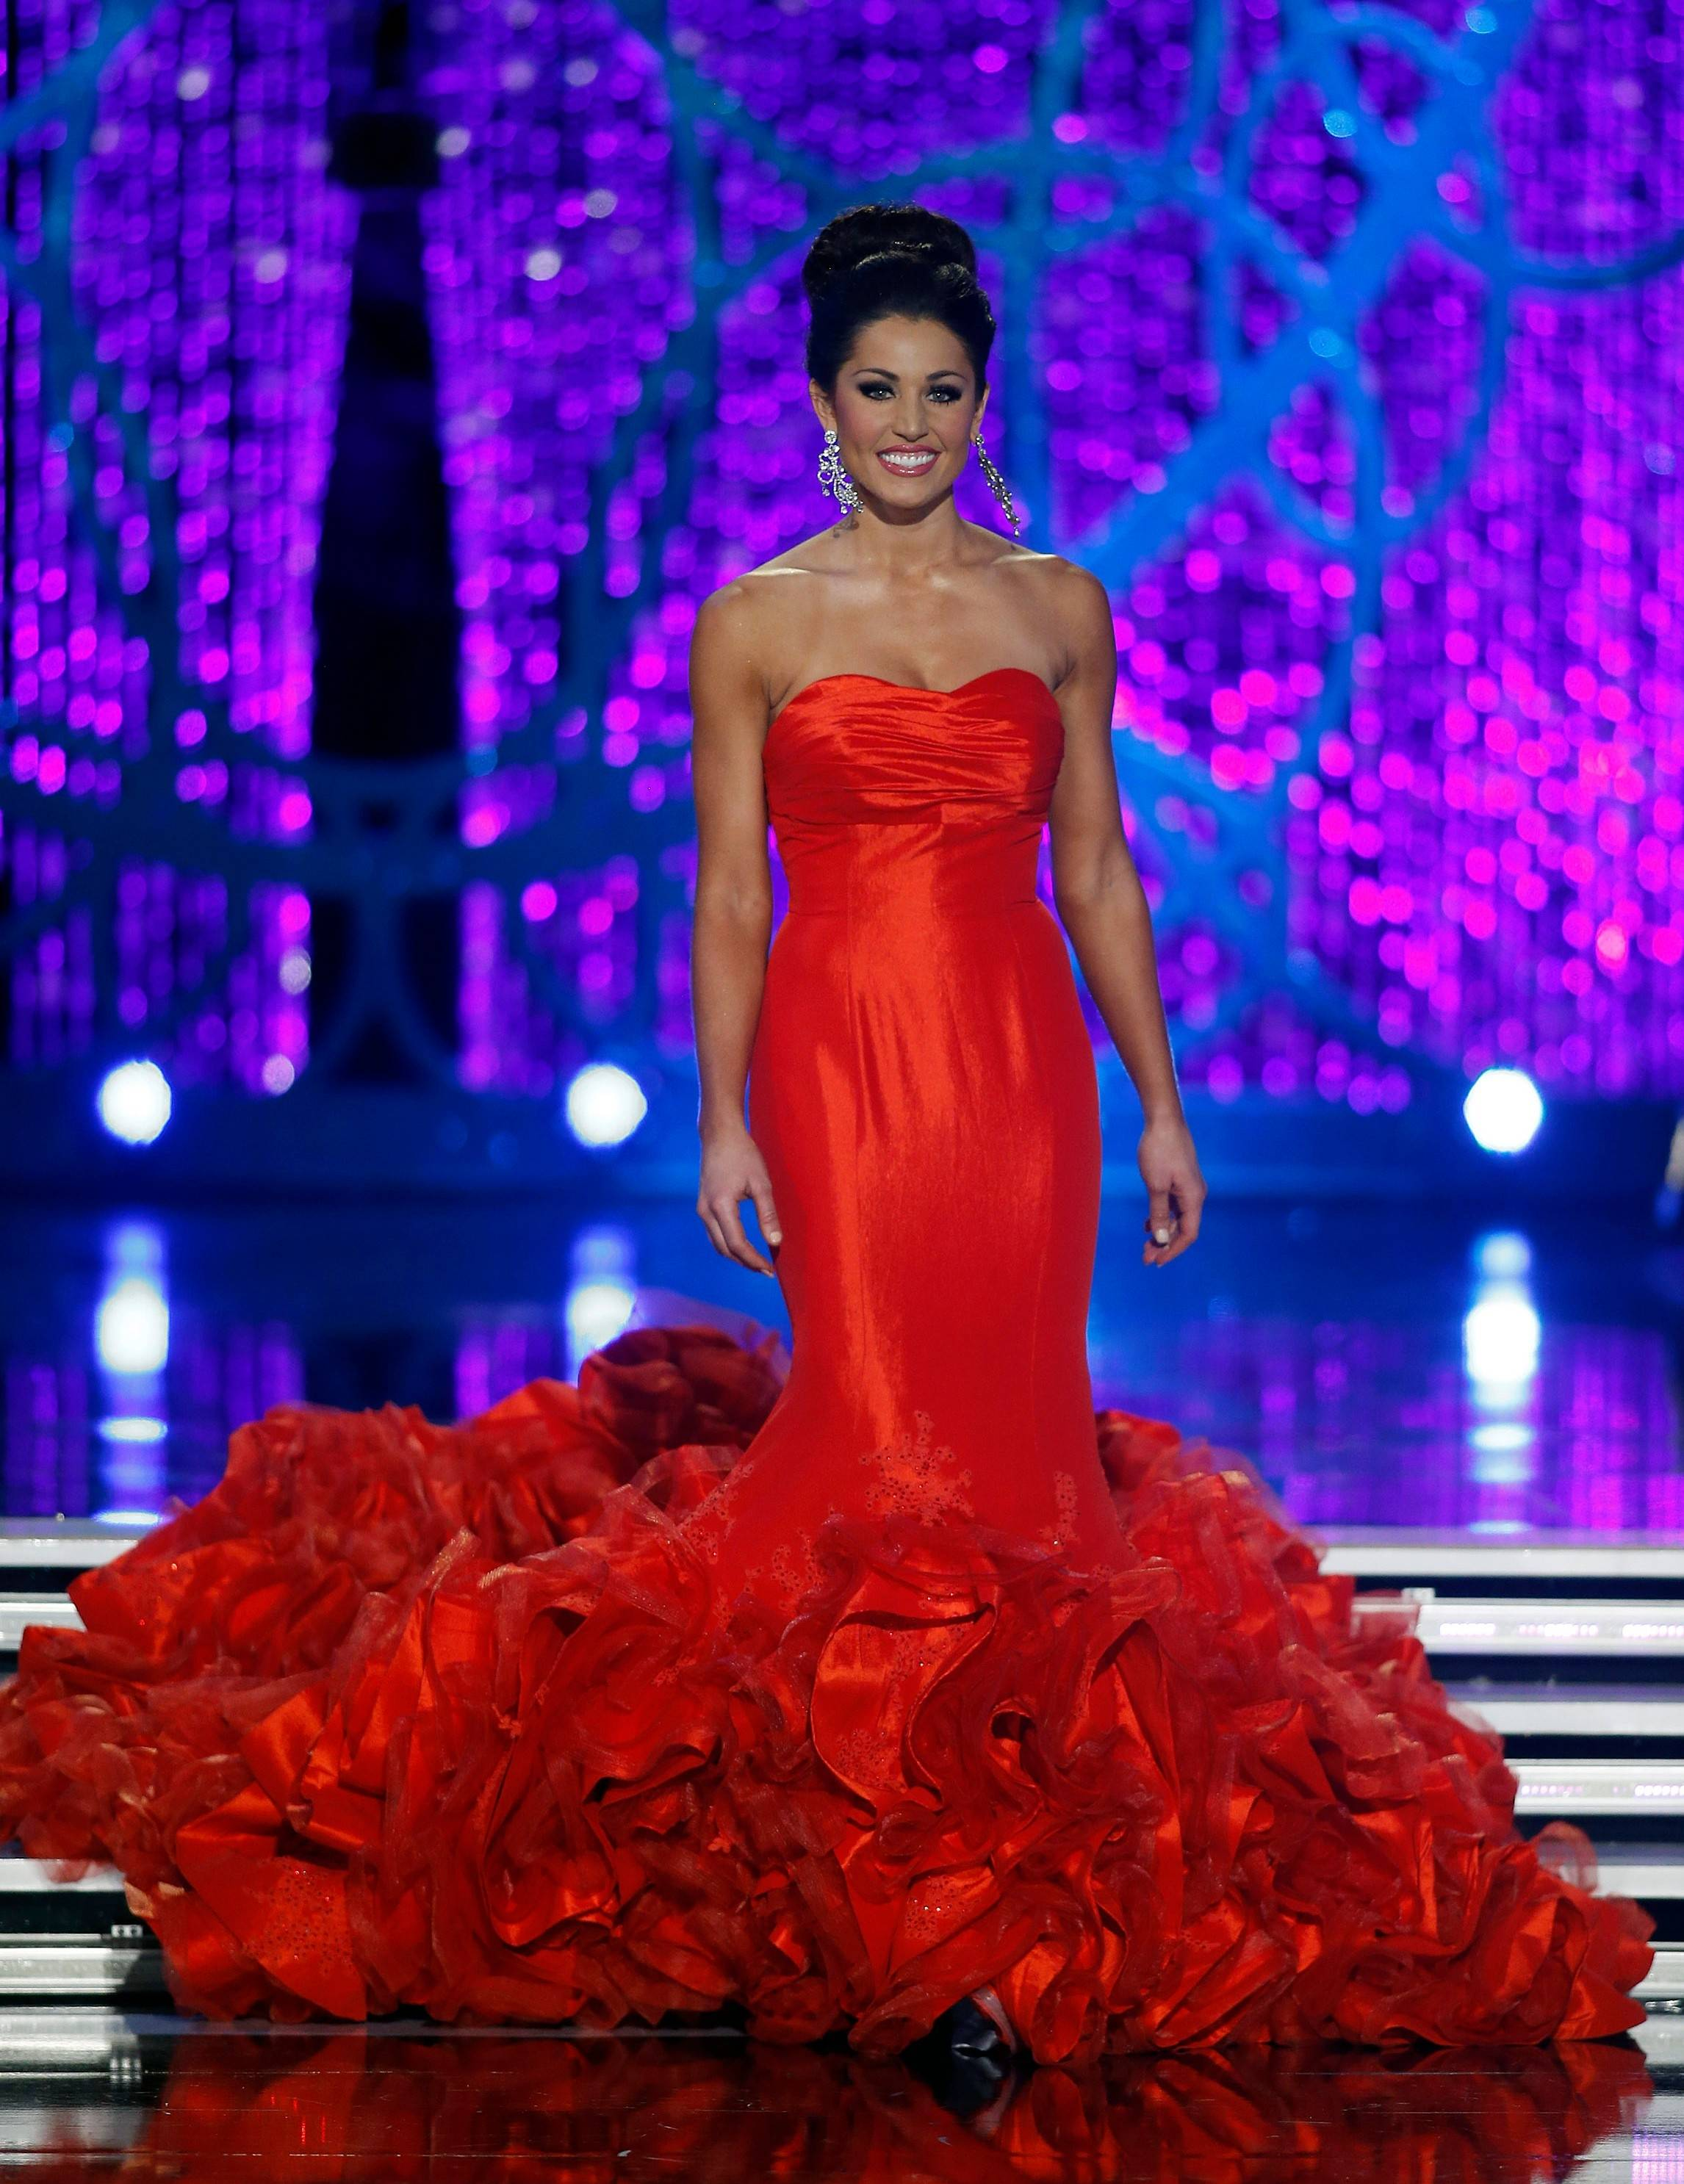 Miss Illinois Megan Irvin competes in the evening gown portion of the Miss America 2013 pageant on Saturday, Jan. 12, 2013, in Las Vegas.